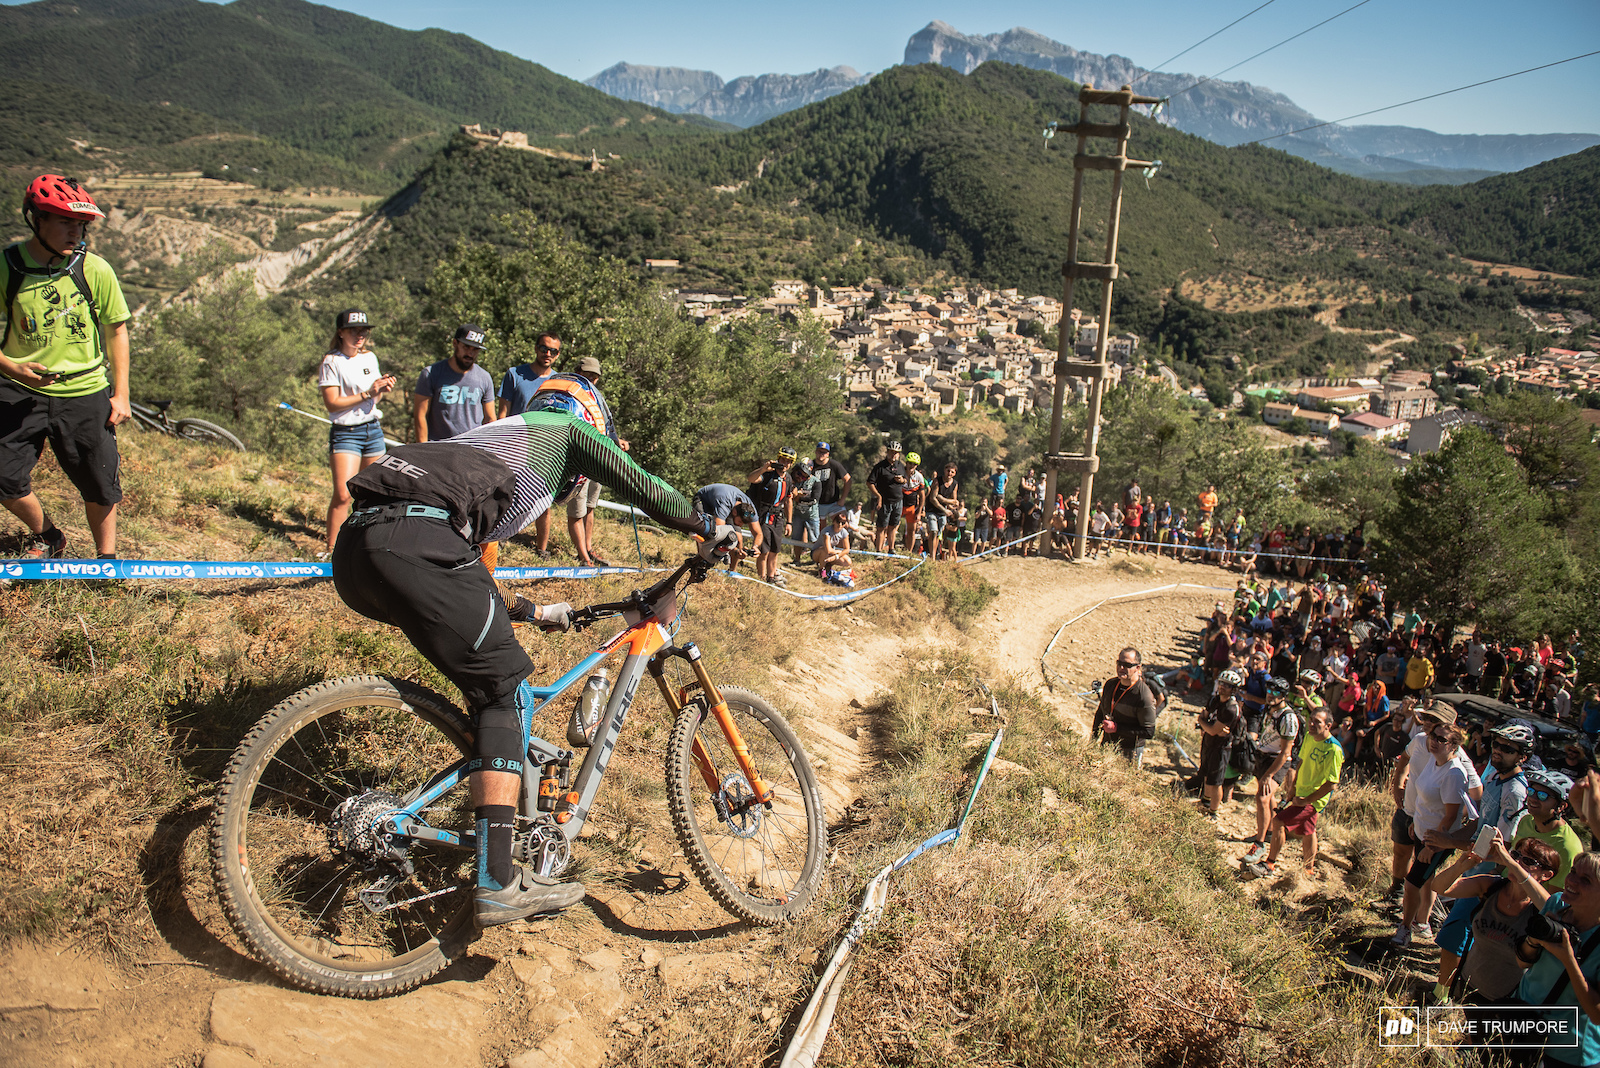 Greg Callaghan had some strong stage finishes on one of his best EWS races this season.